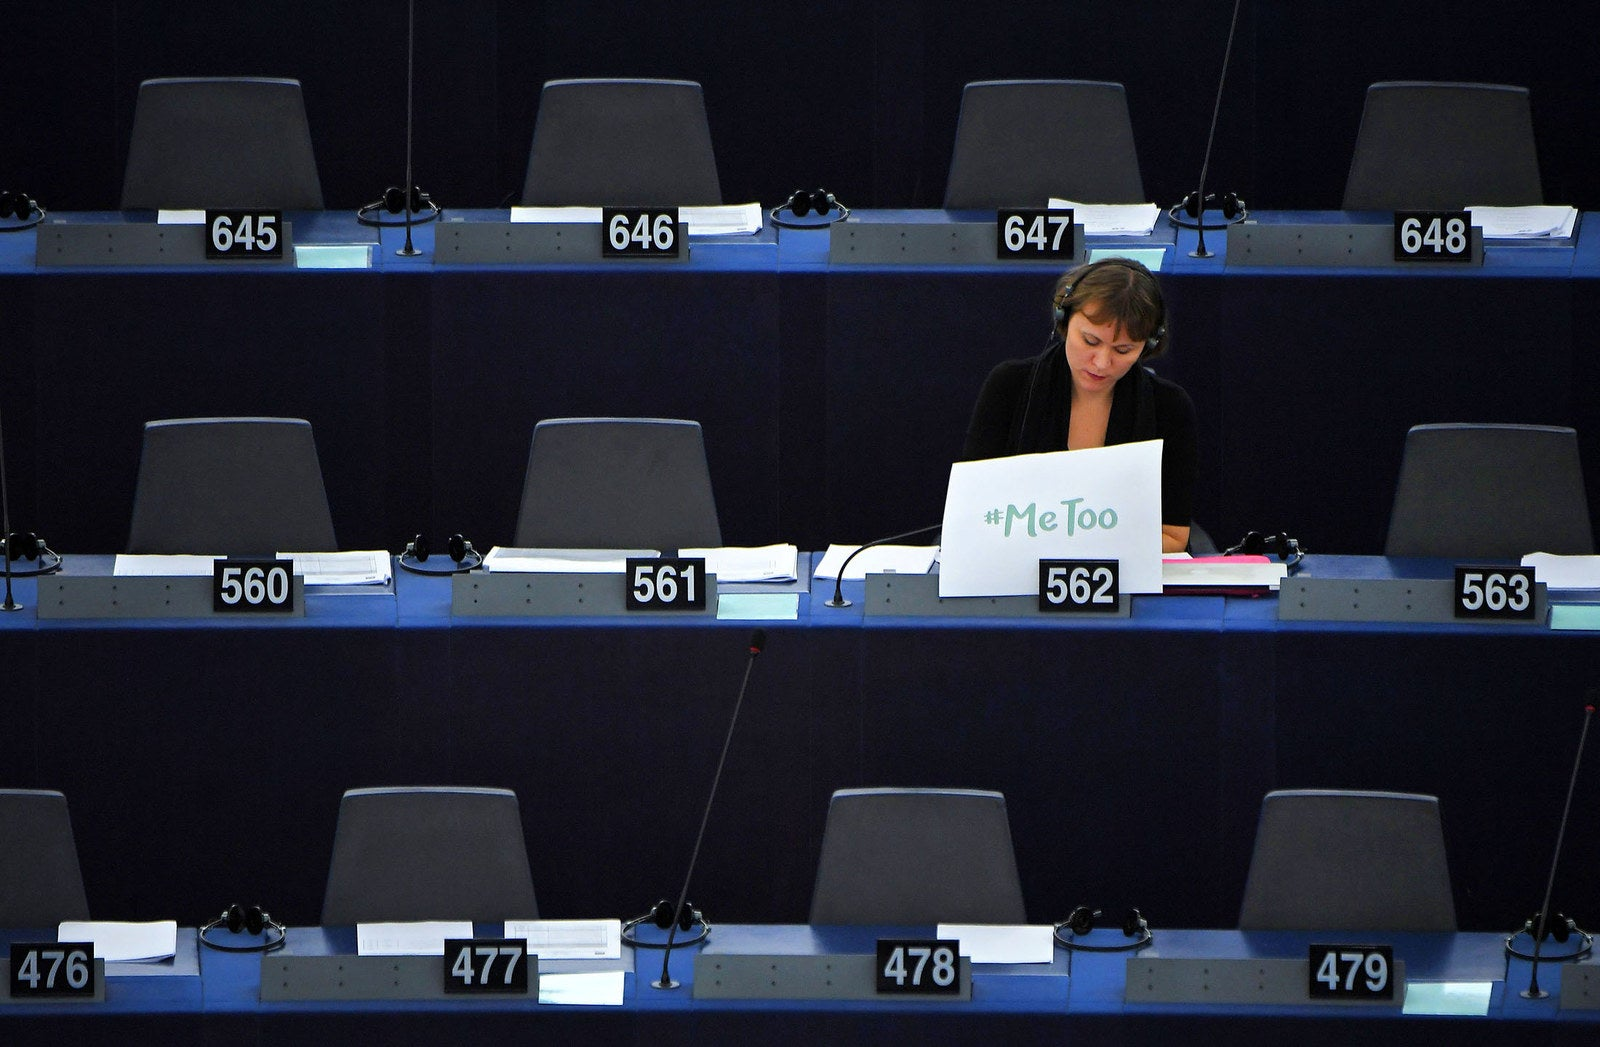 """Swedish MEP Linnéa Engström sits behind a placard placed on her desk that reads """"Me too"""" during a debate about combating sexual harassment and abuse in the EU at the European Parliament in Strasbourg, France, on Oct. 25."""